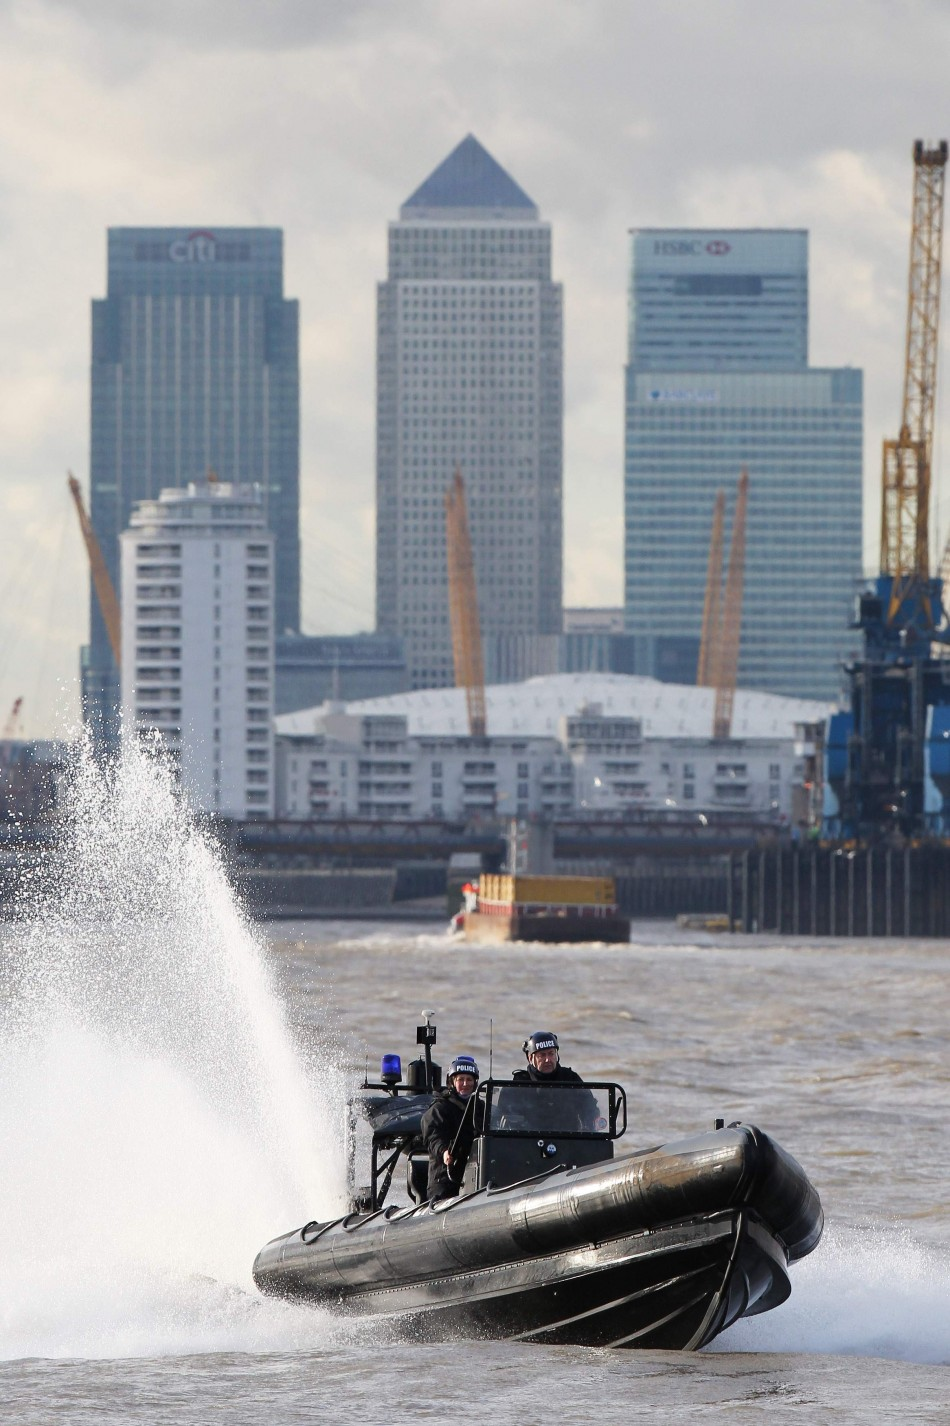 Met Police speed down the Thames